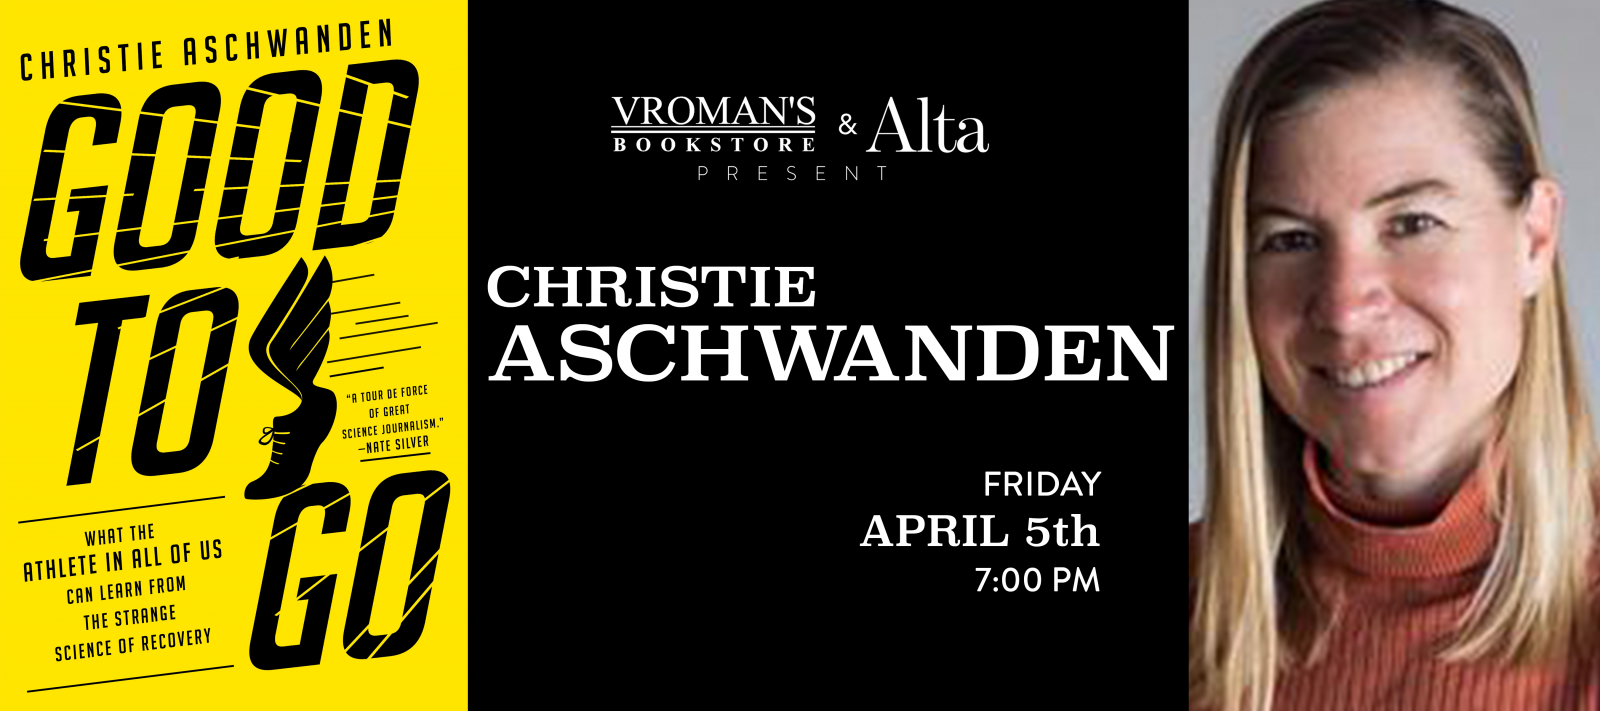 Christie Aschwanden book signing Friday April 5th at 7pm